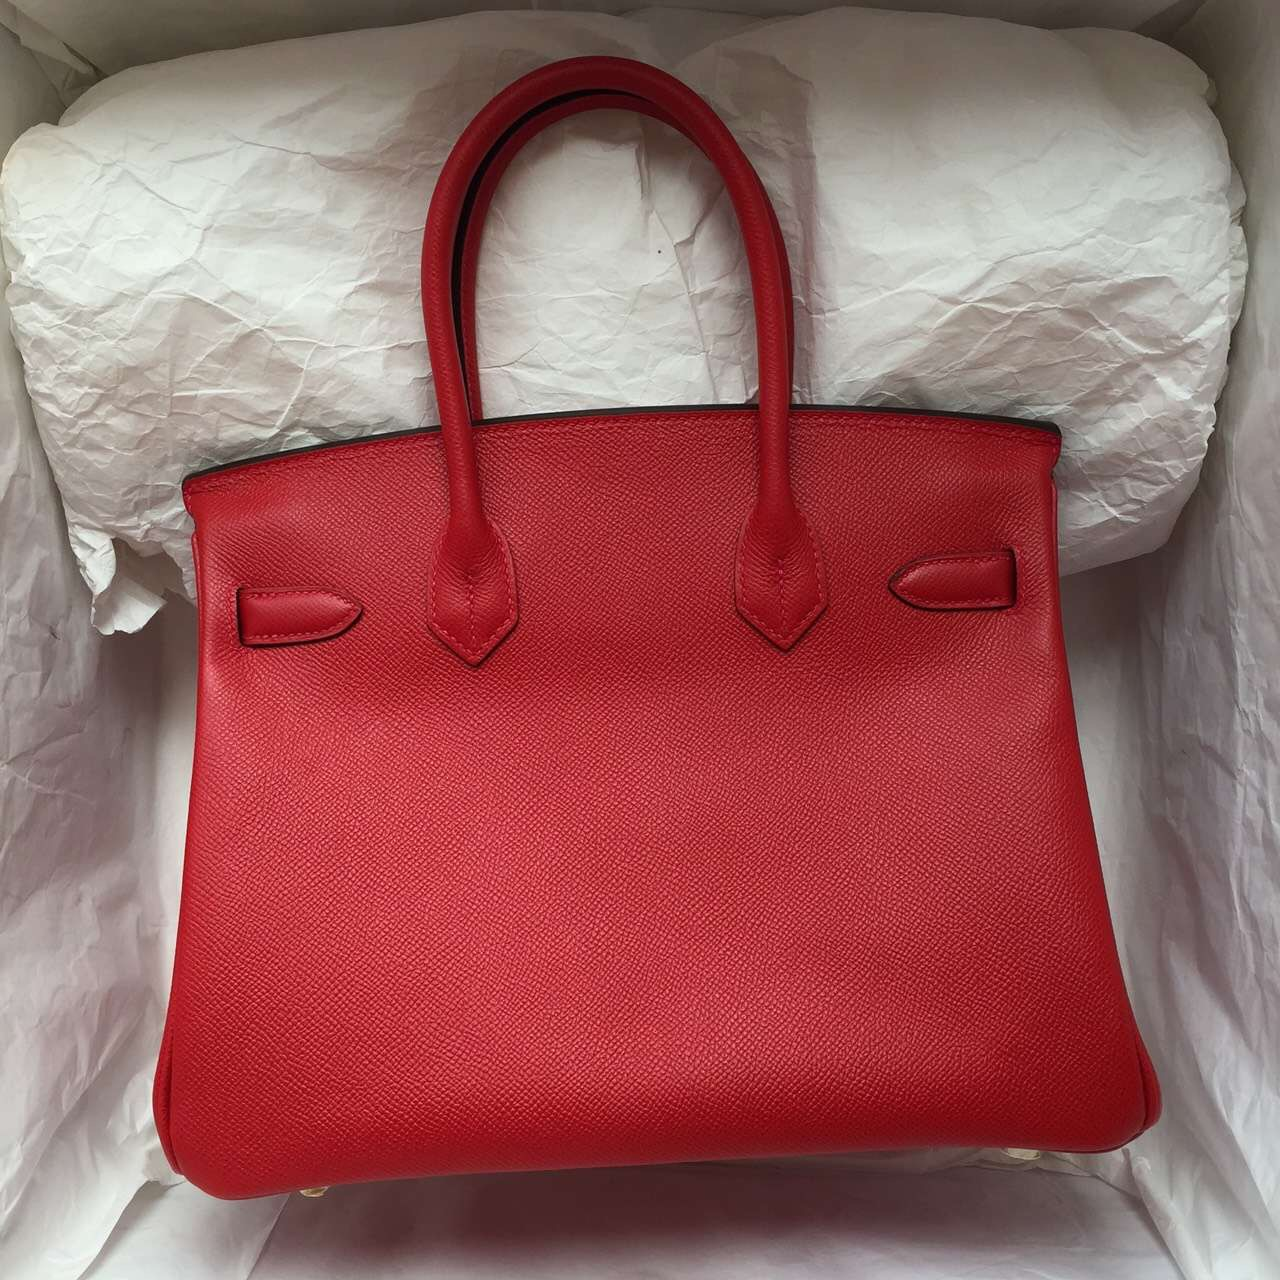 30CM Hermes Birkin Bag Q5 Chinese Red Epsom Leather Silver Hardware Online Shopping